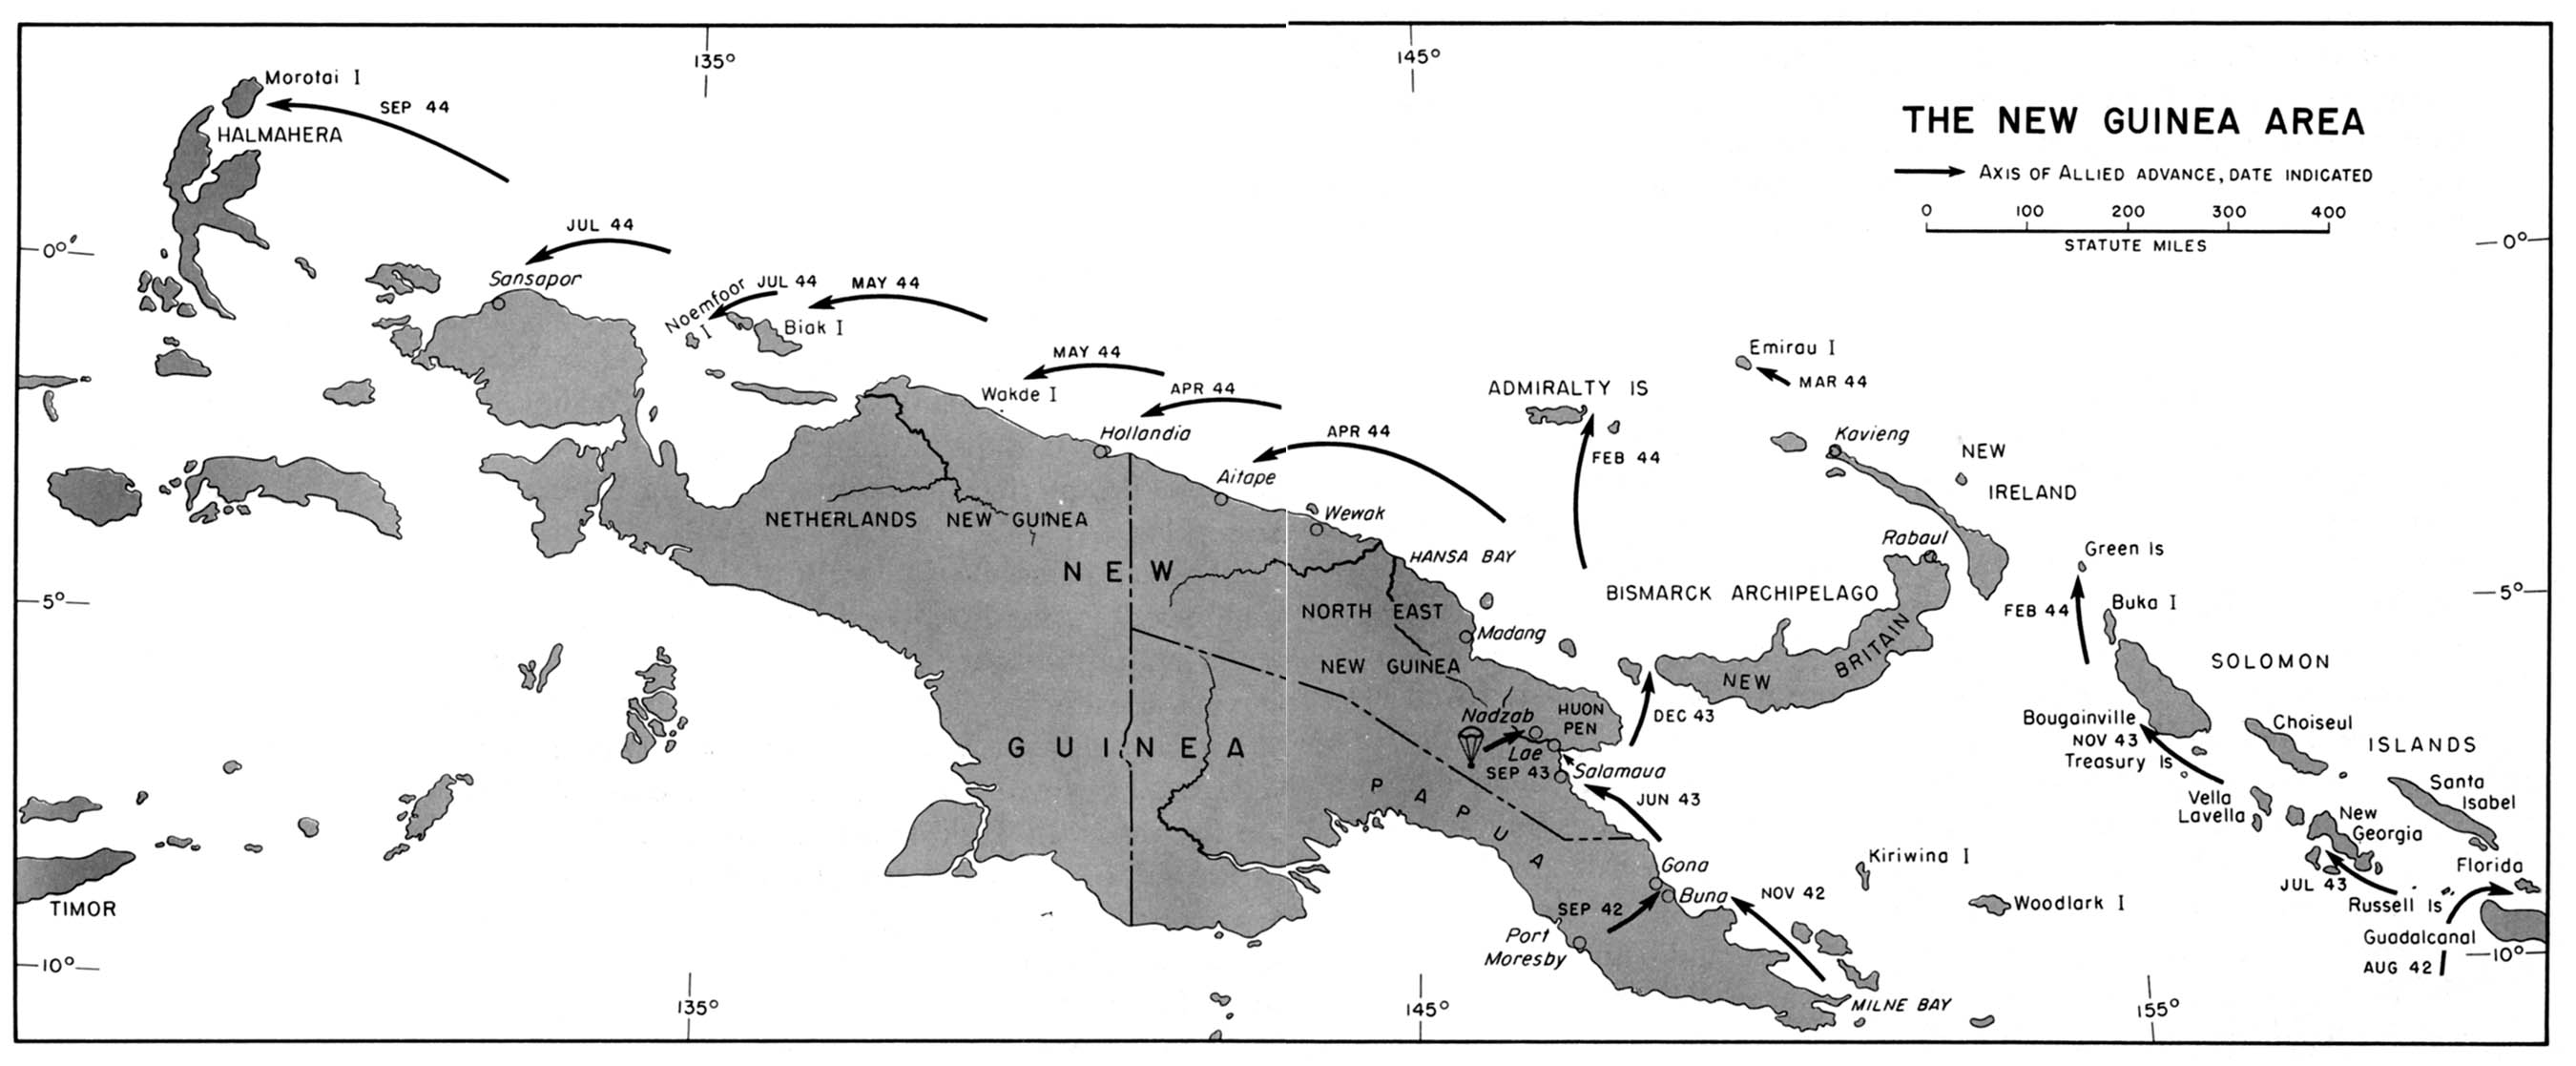 1up travel historical maps of world war ii w guinea area 1942 historical maps of world war ii new guinea area 1942 1944 from american gumiabroncs Image collections